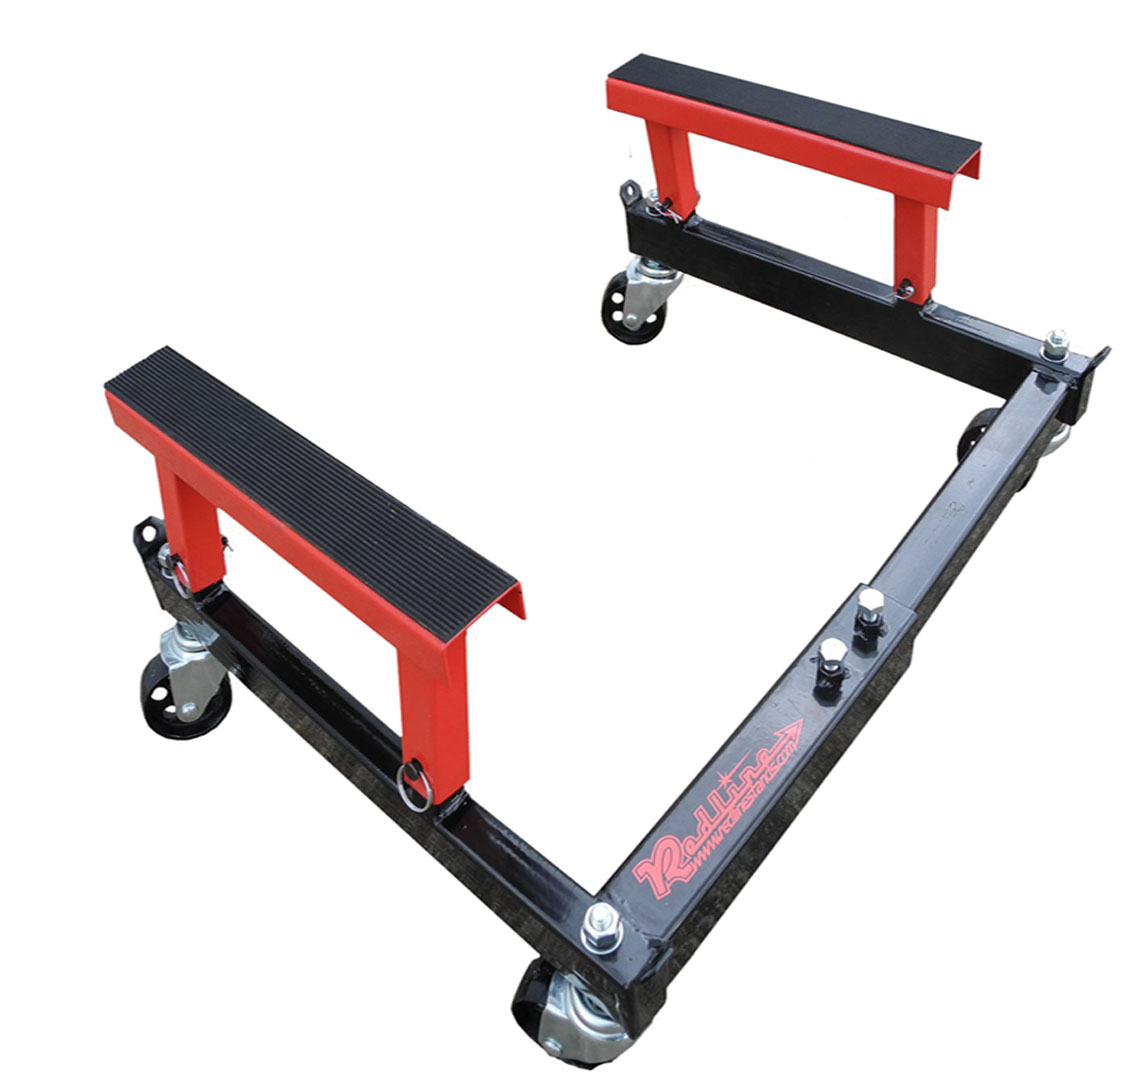 Redline Sd1k Atv Motorcycle Engine Cradle Dolly Free